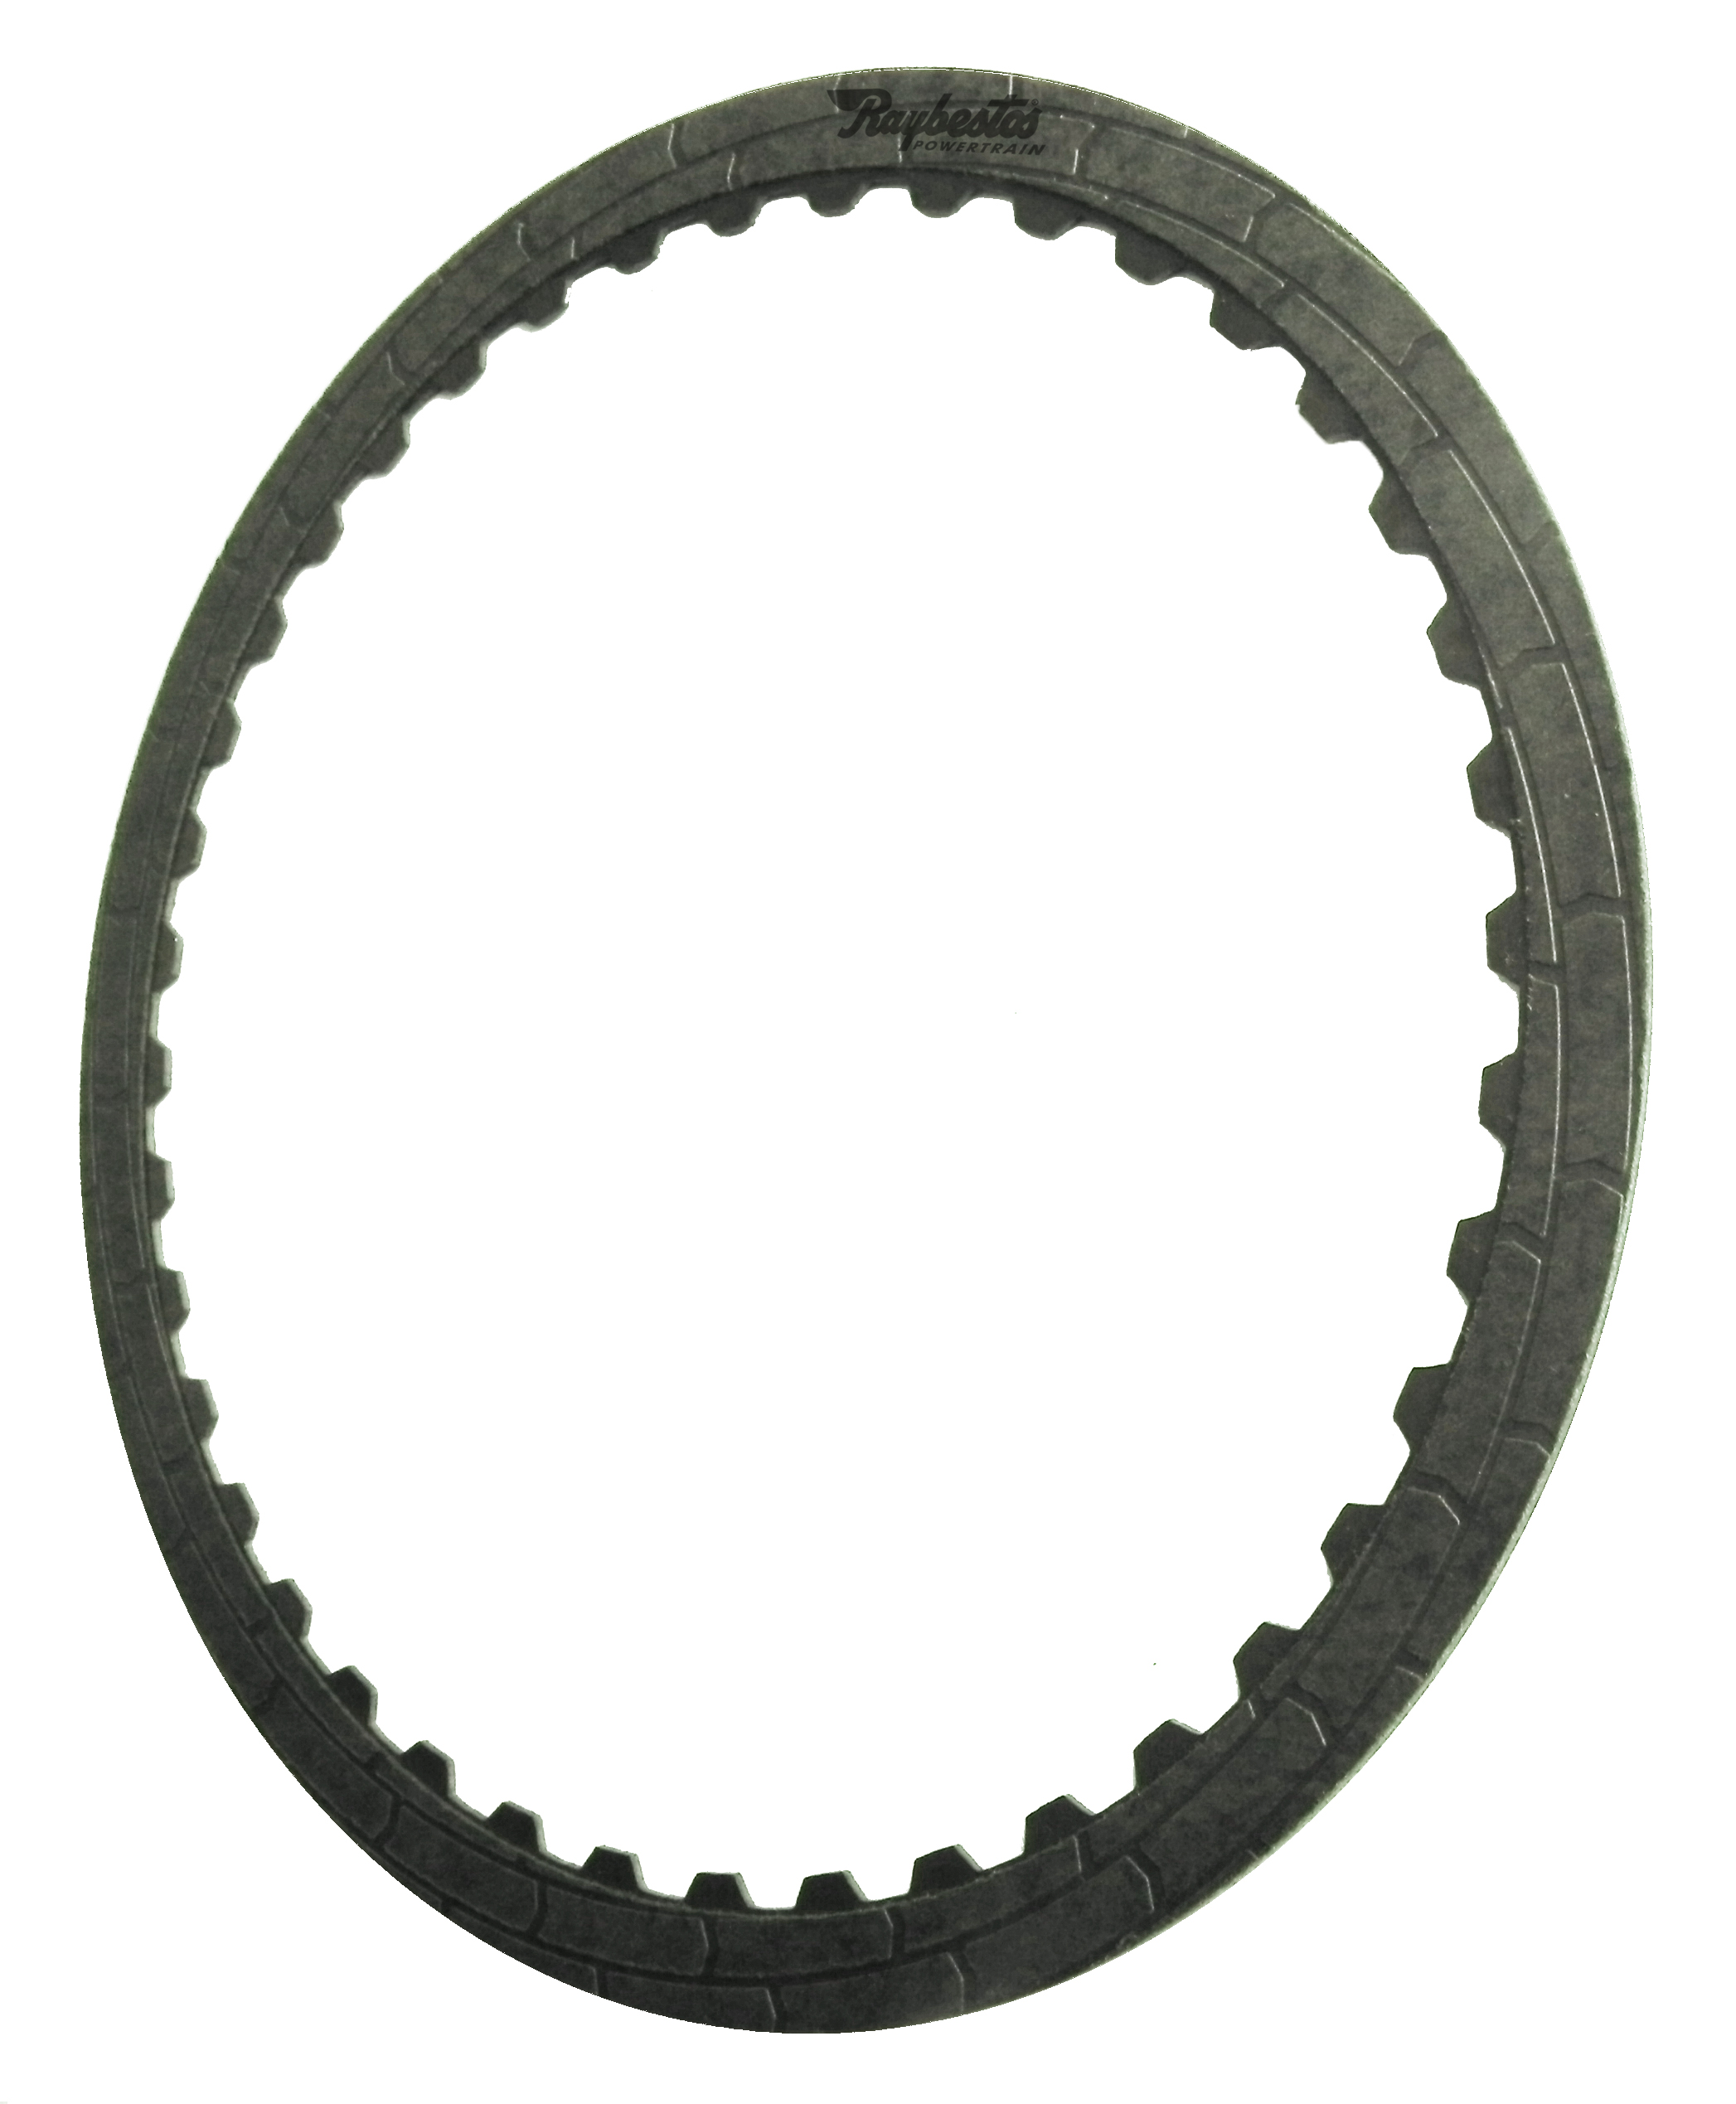 RH576630 | 2003-ON Friction Clutch Plate (HT) Hybrid Technology #1 Brake Proprietary High Energy (HT)